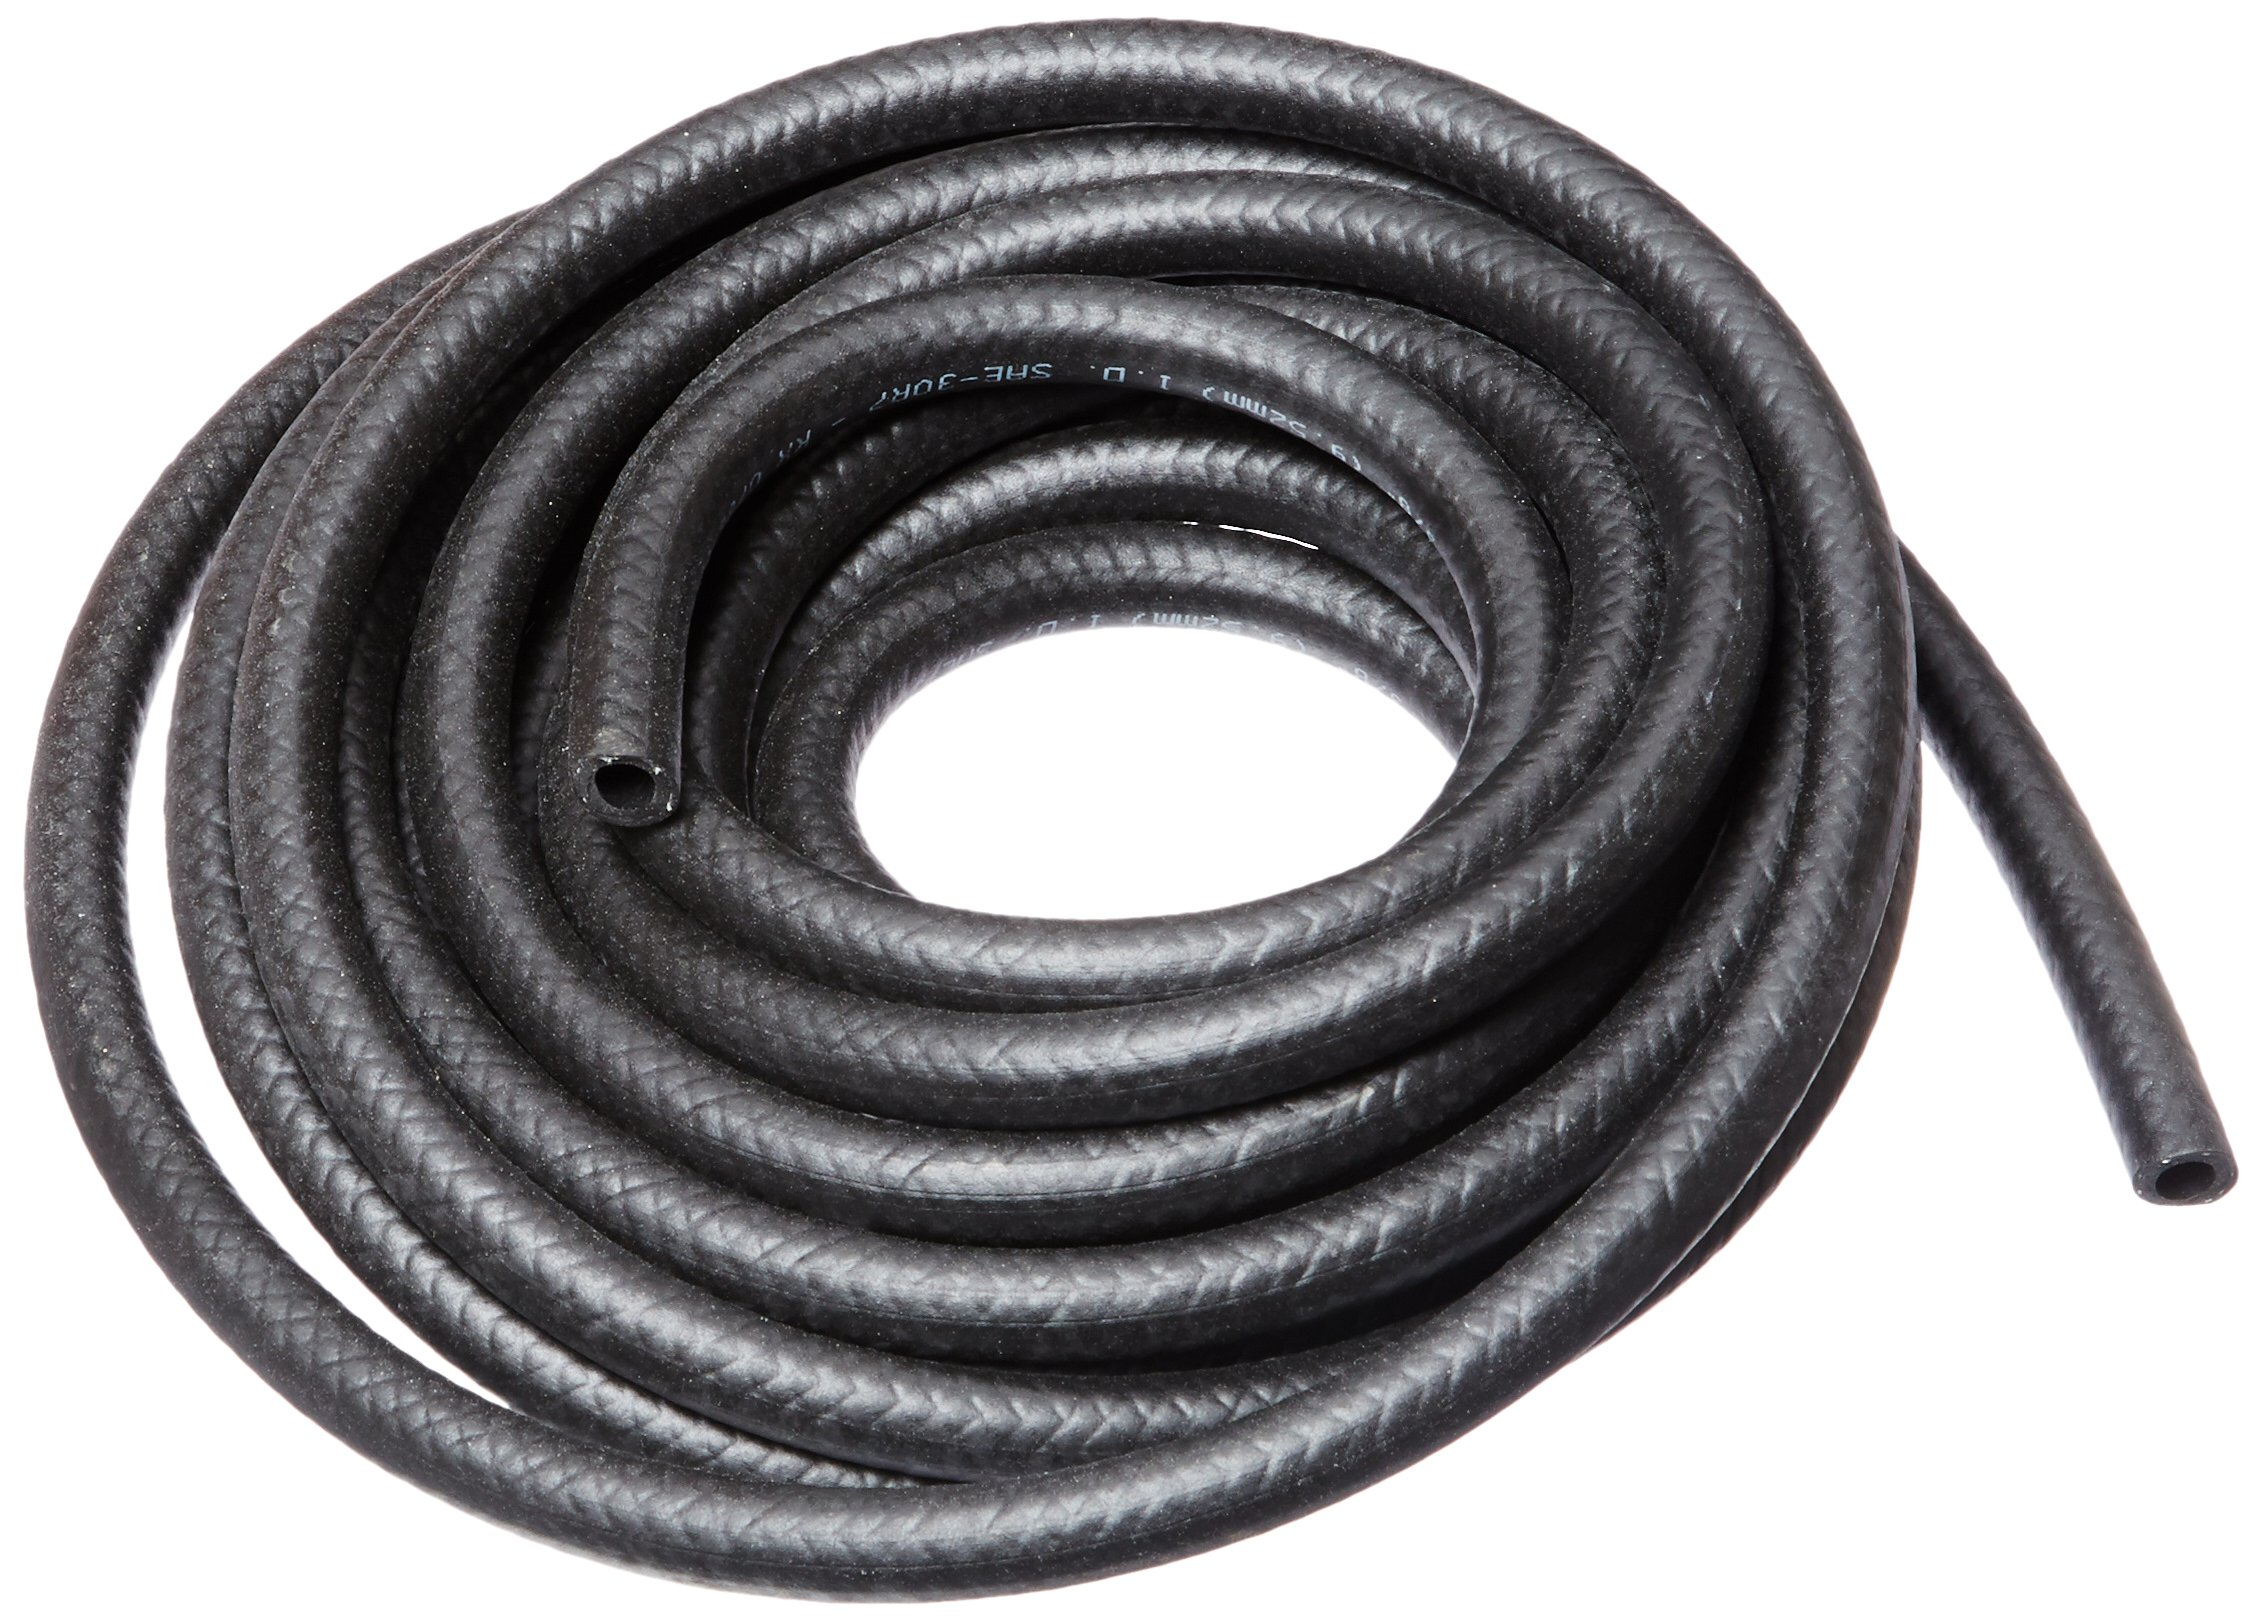 HBD Thermoid NBR/PVC SAE30R7 Premium Fuel Line Hose, 3/8'' x 25' Length, 0.375'' ID, Black by HBD Thermoid (Image #1)